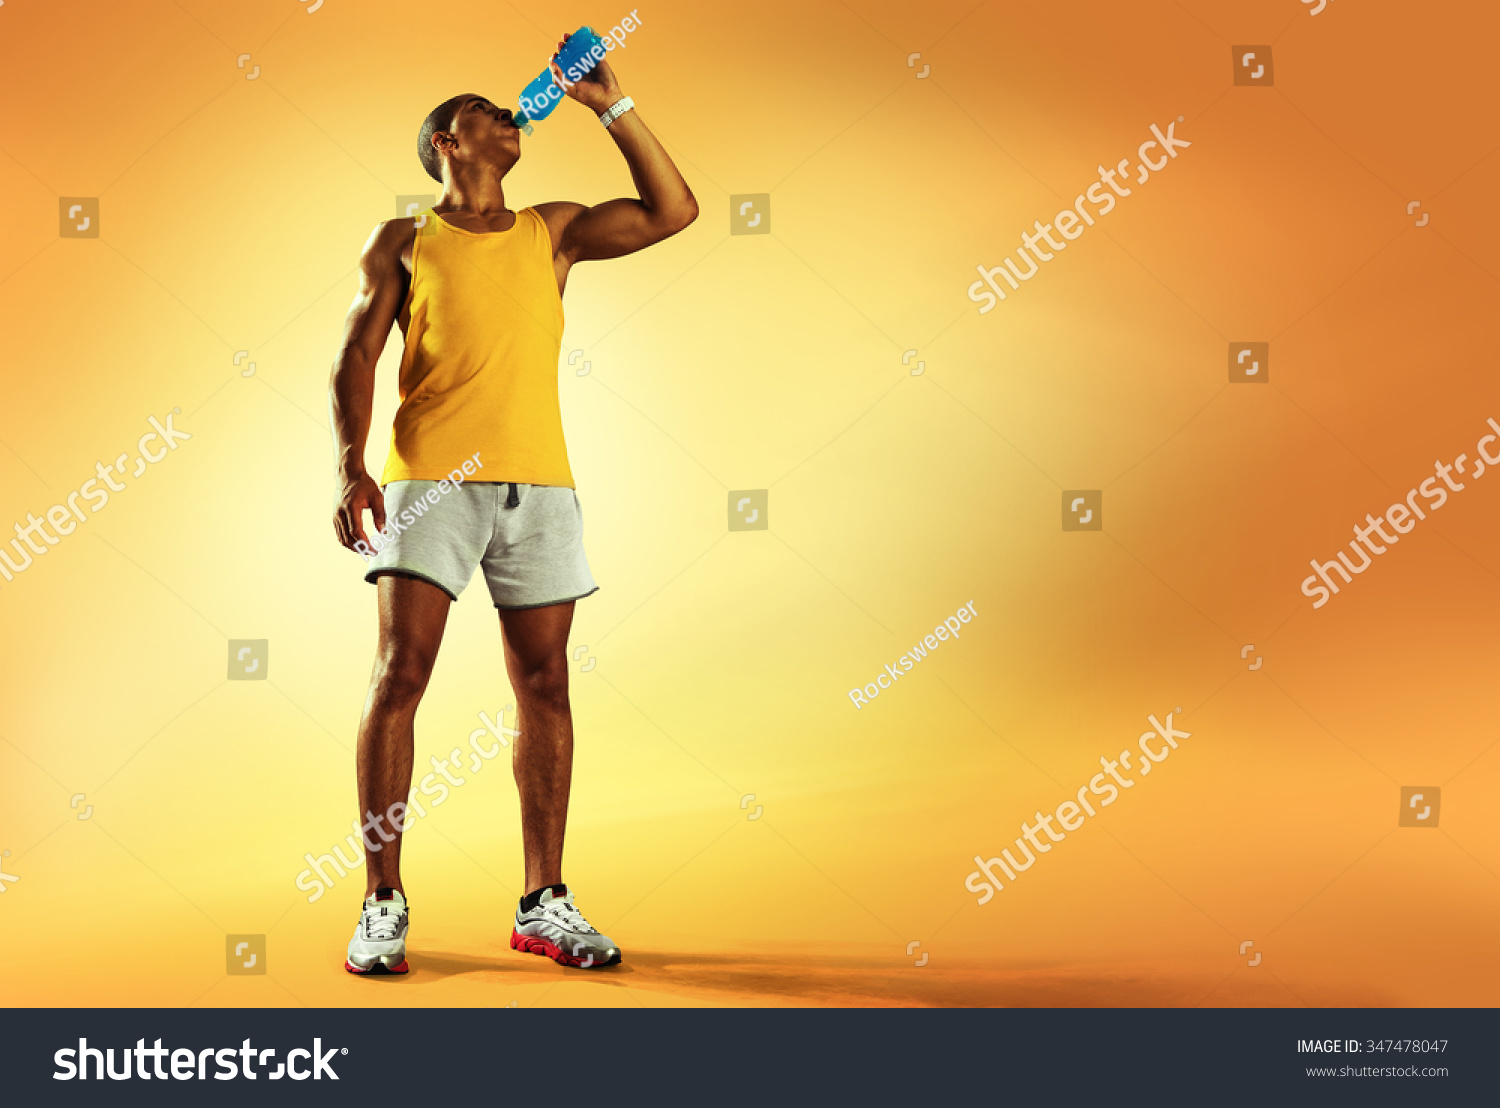 how to drink water after running